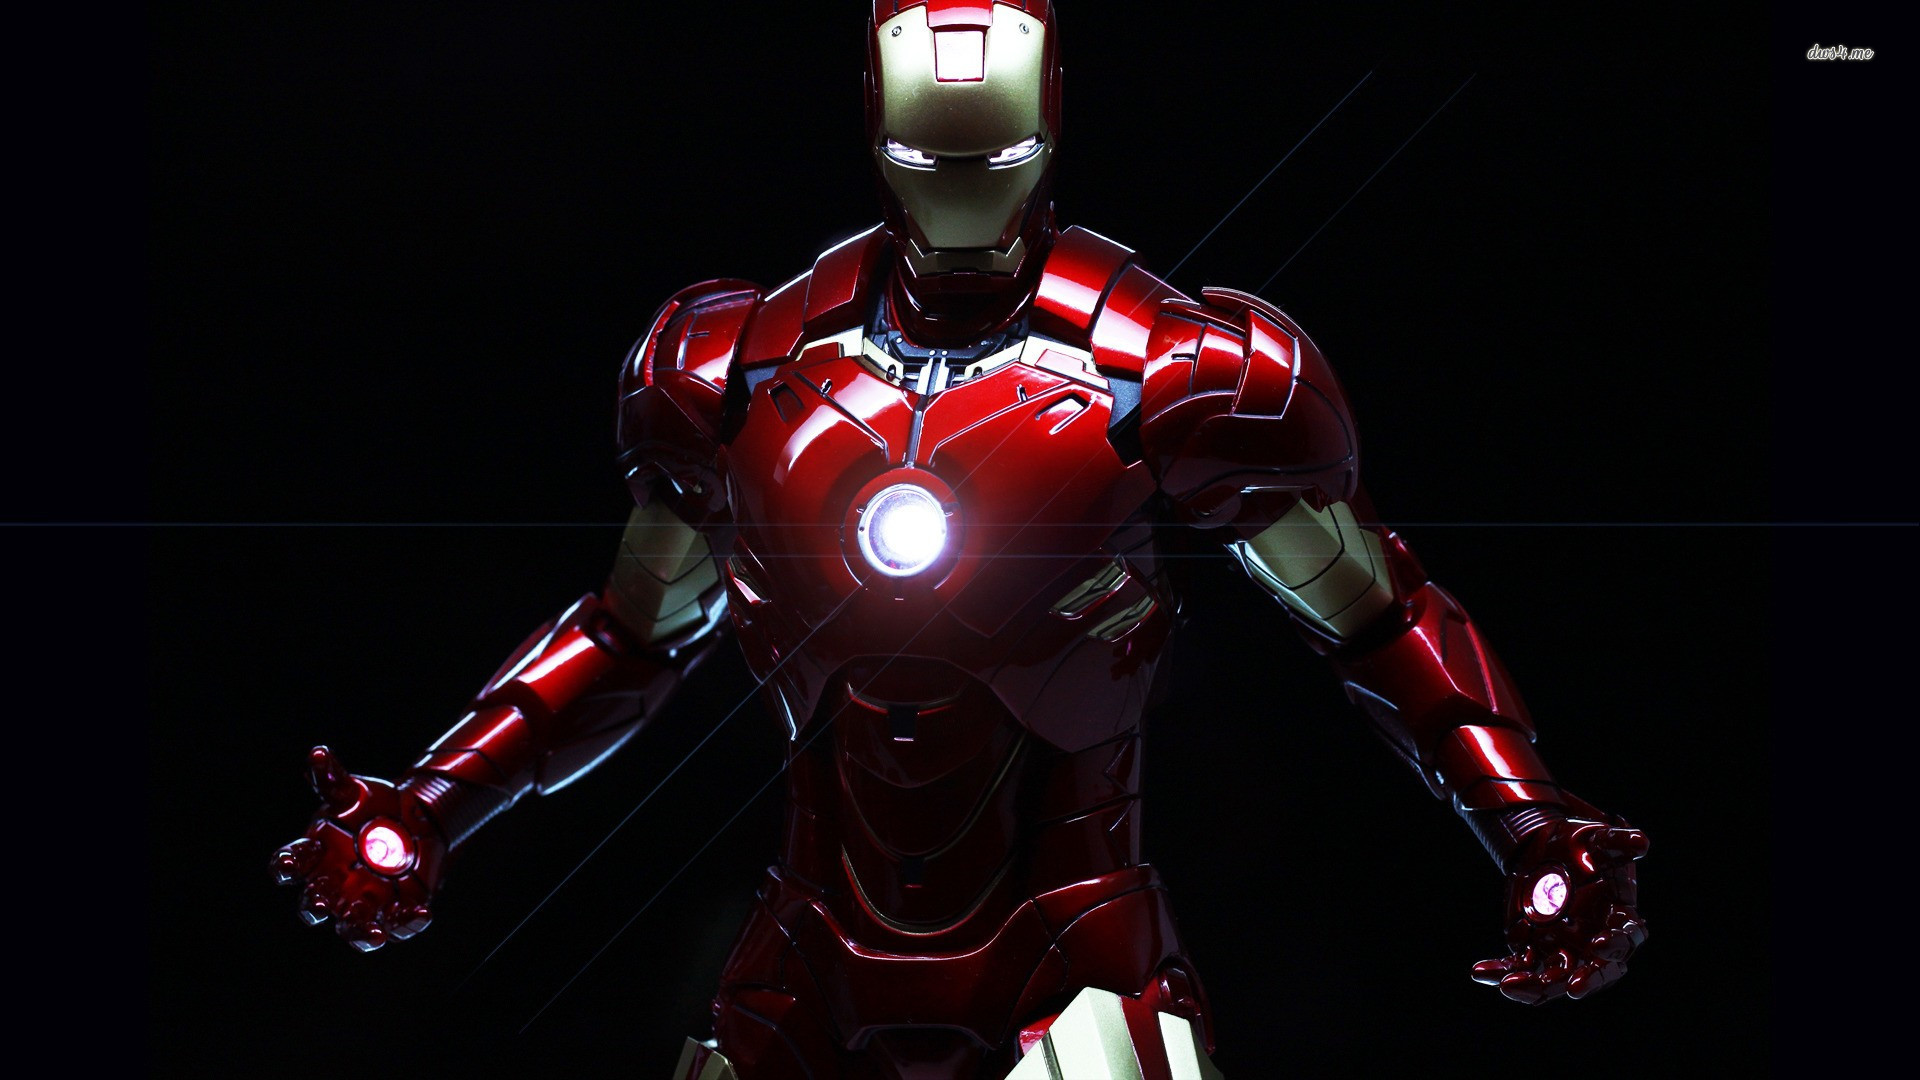 Iron Man download free wallpapers